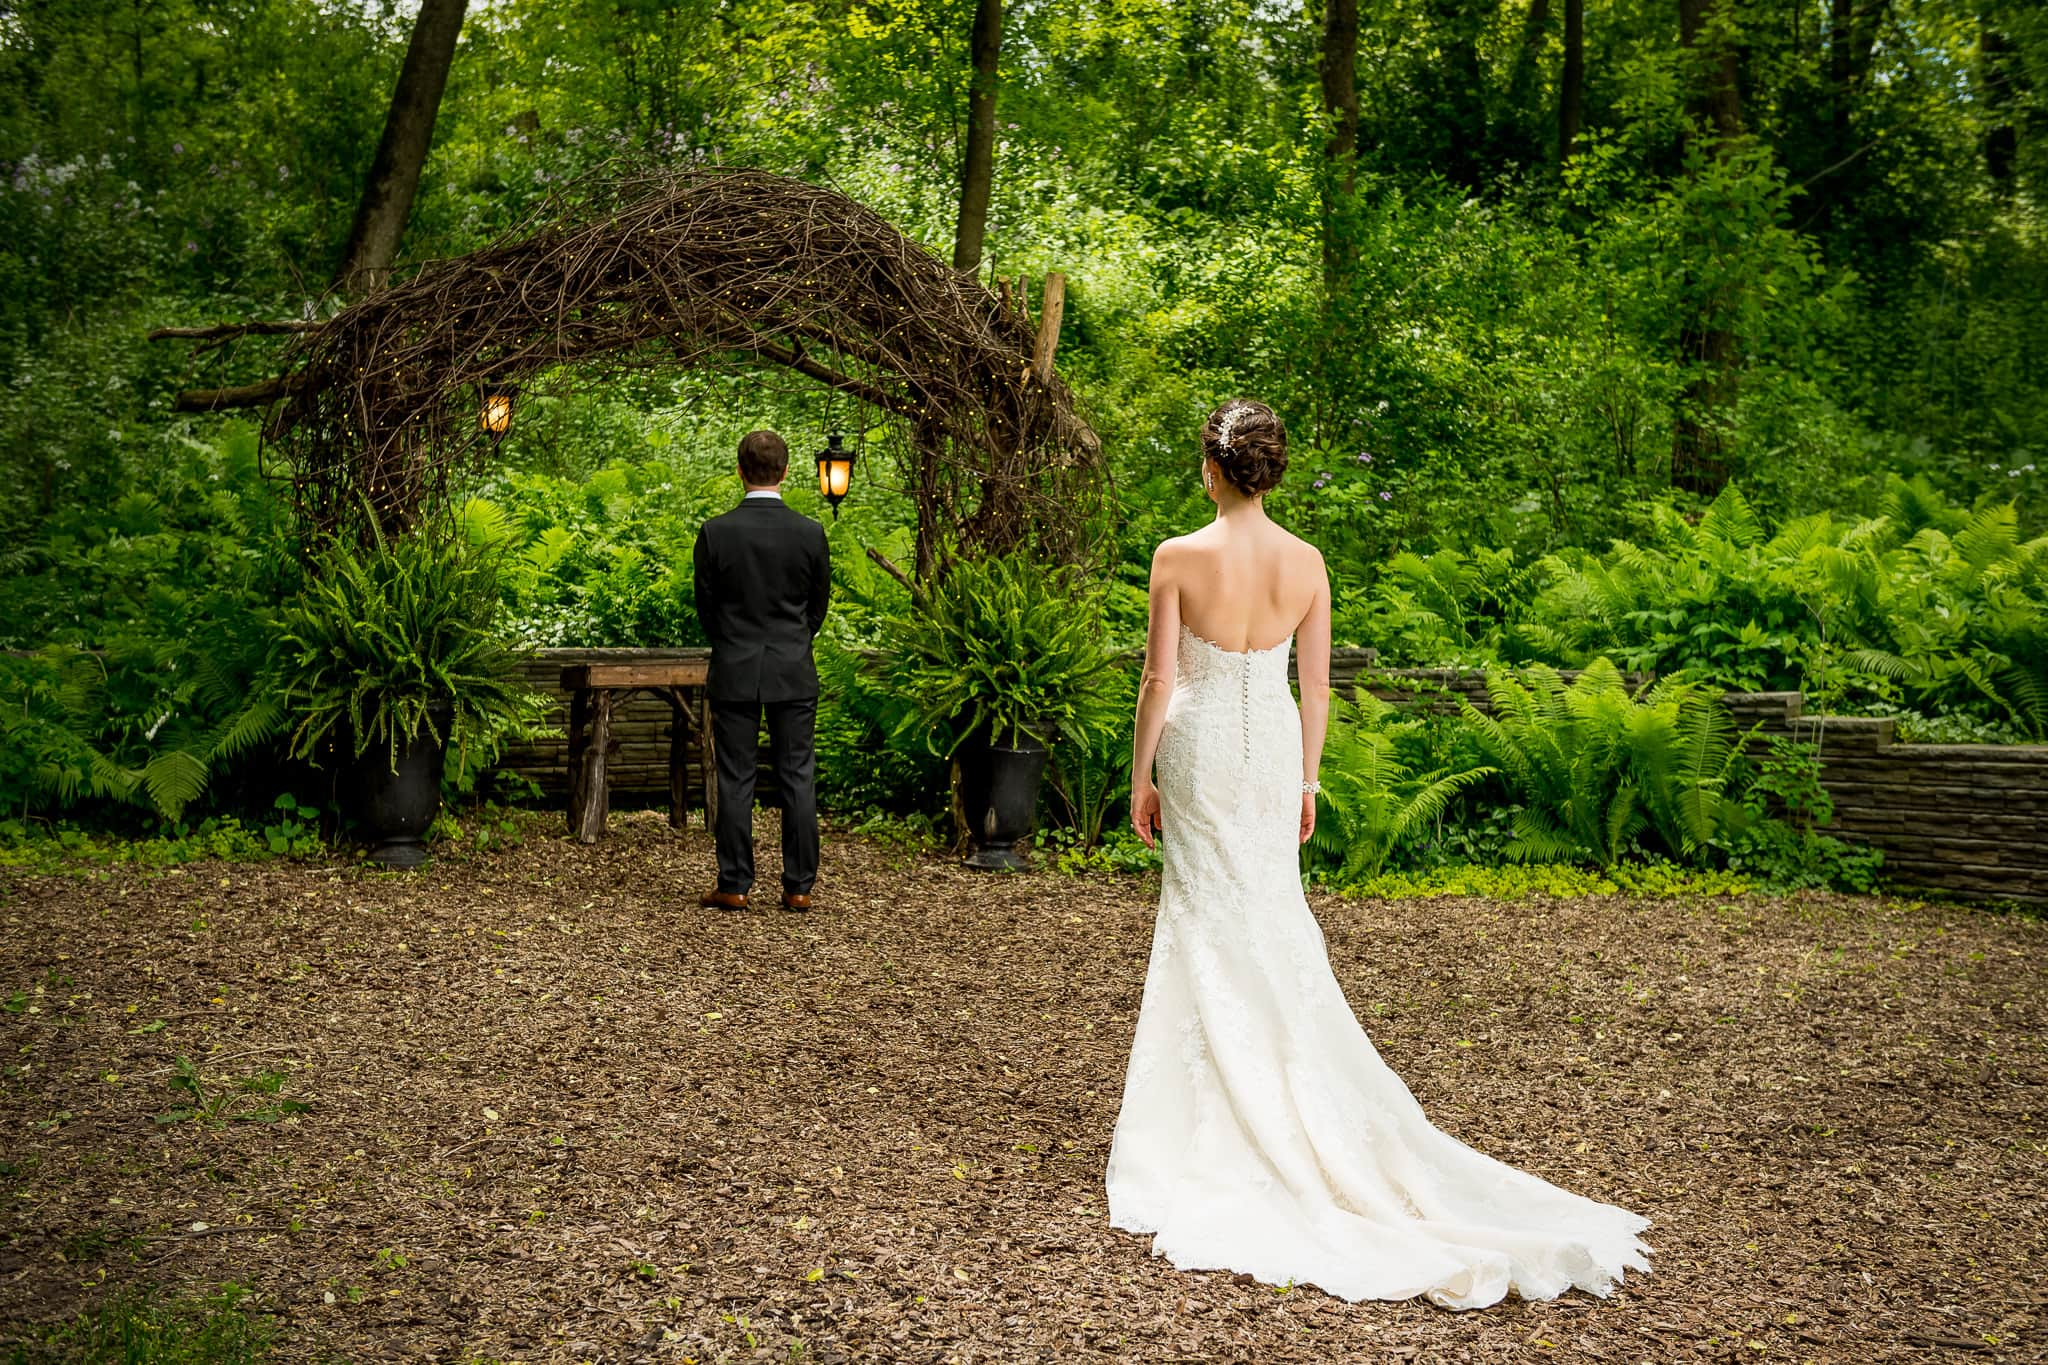 Bride & Groom are about to see each other for the first time in Camrose Hill Flower Farm's Fairy Glen outdoor area